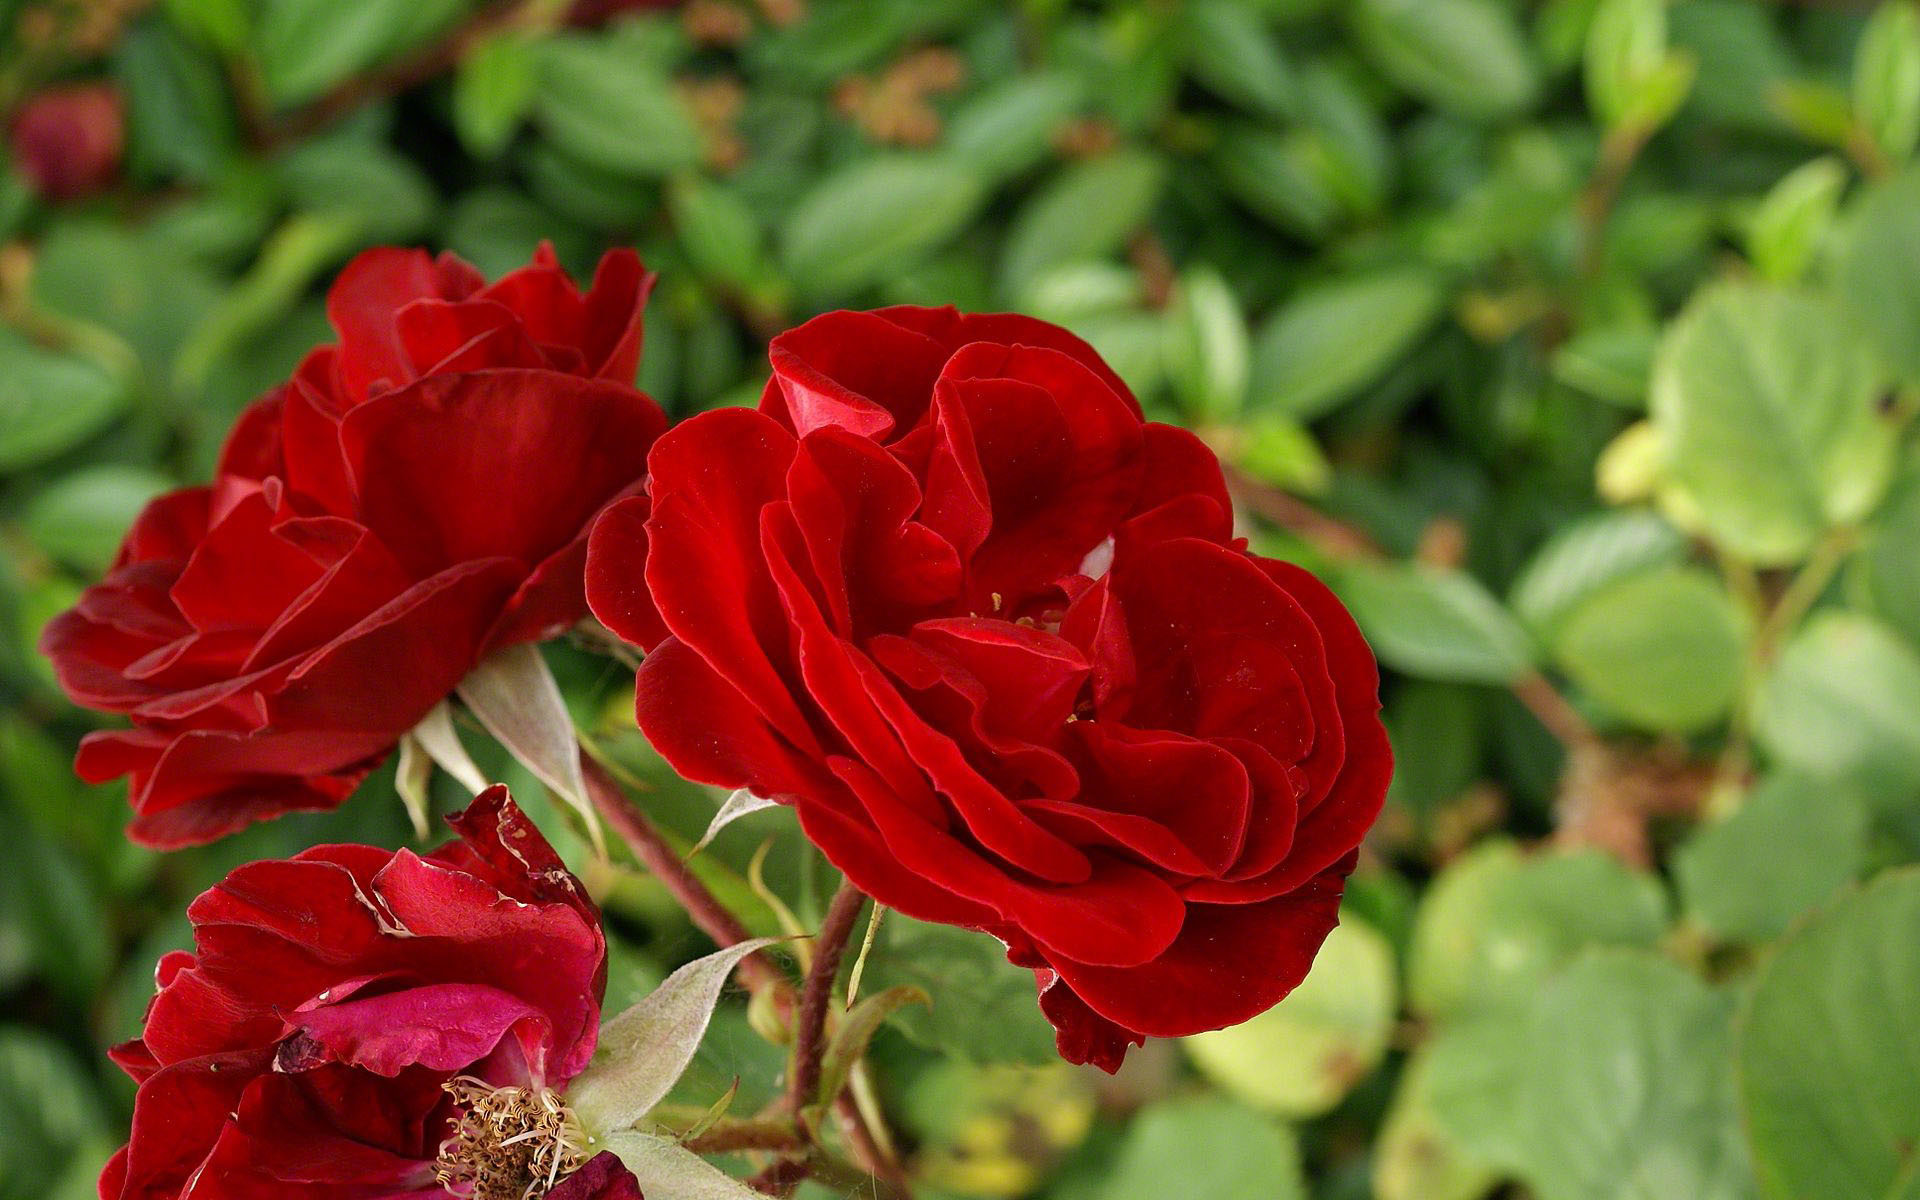 Red Rose Wallpapers Pictures Images: Rose Flower Images Wallpapers (55+ Images